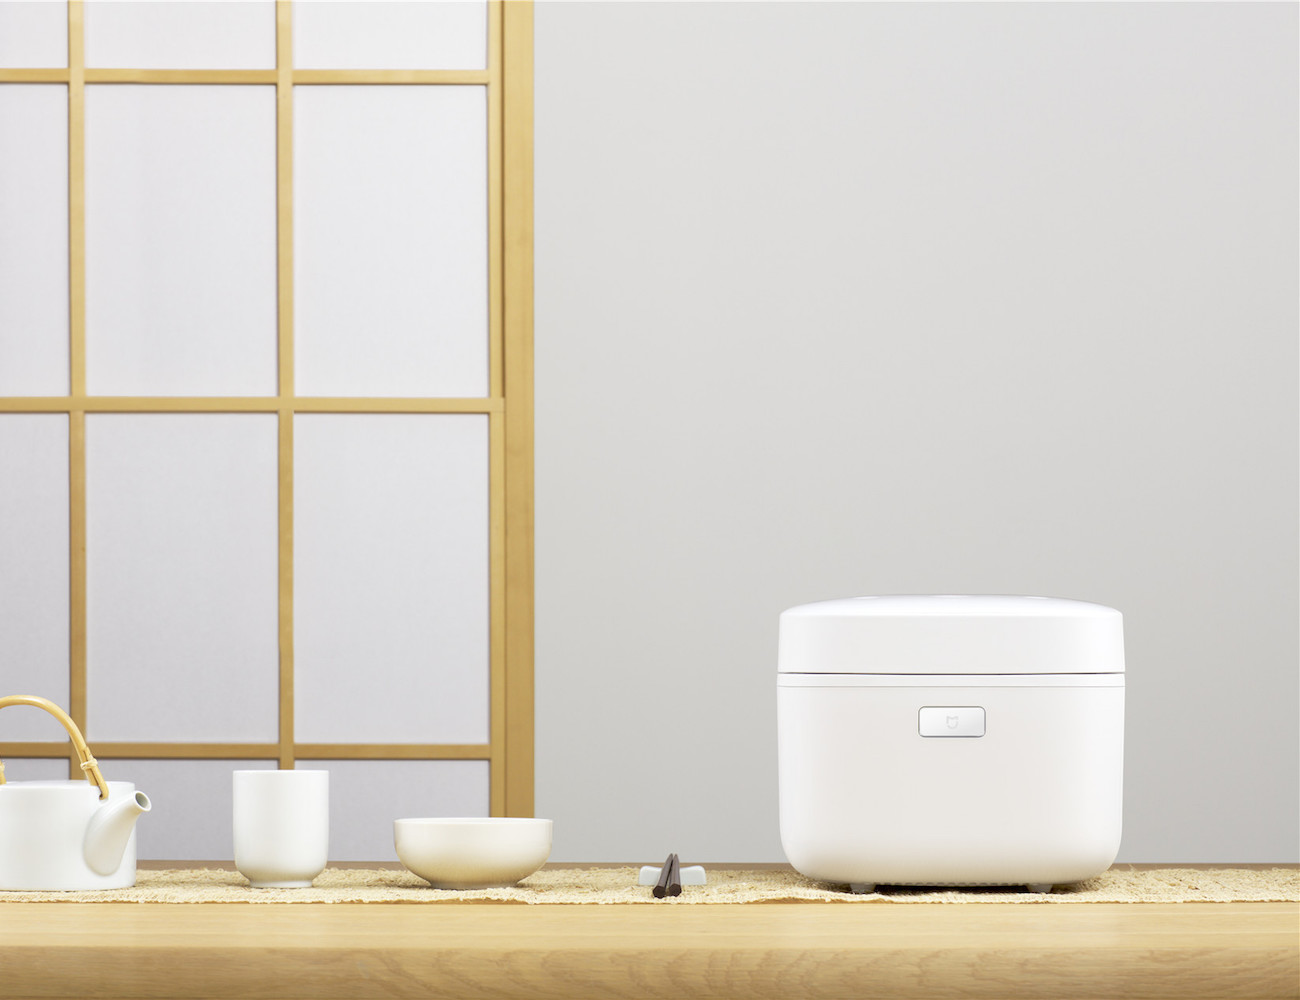 mi-rice-cooker-by-xiaomi-03